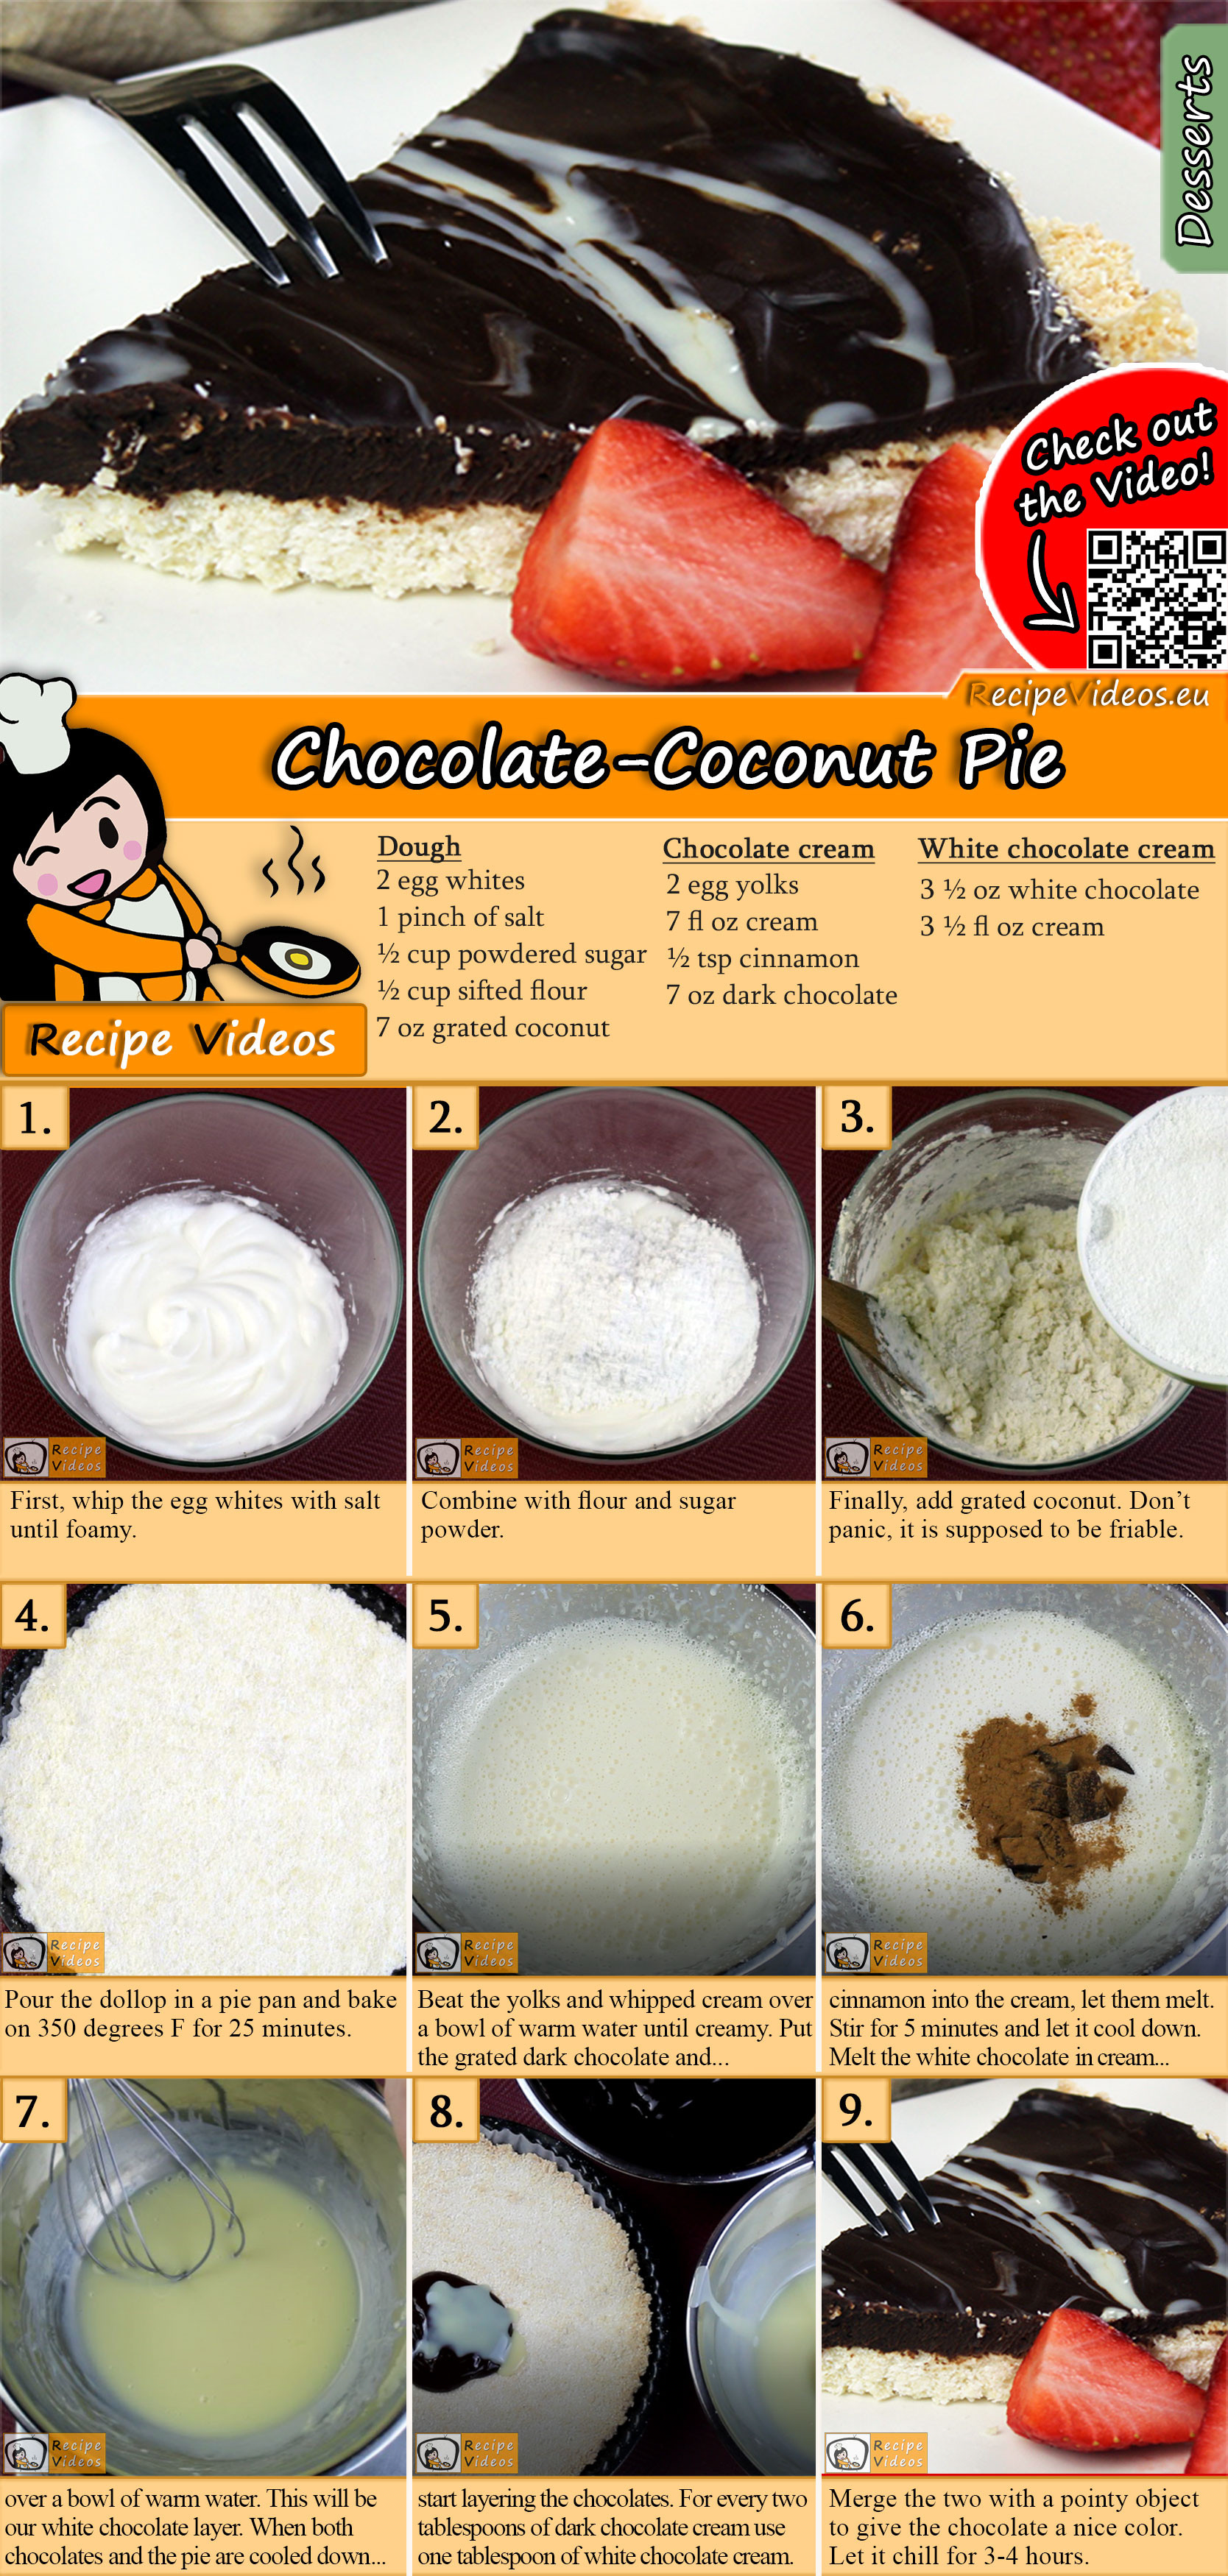 Chocolate-Coconut Pie recipe with video